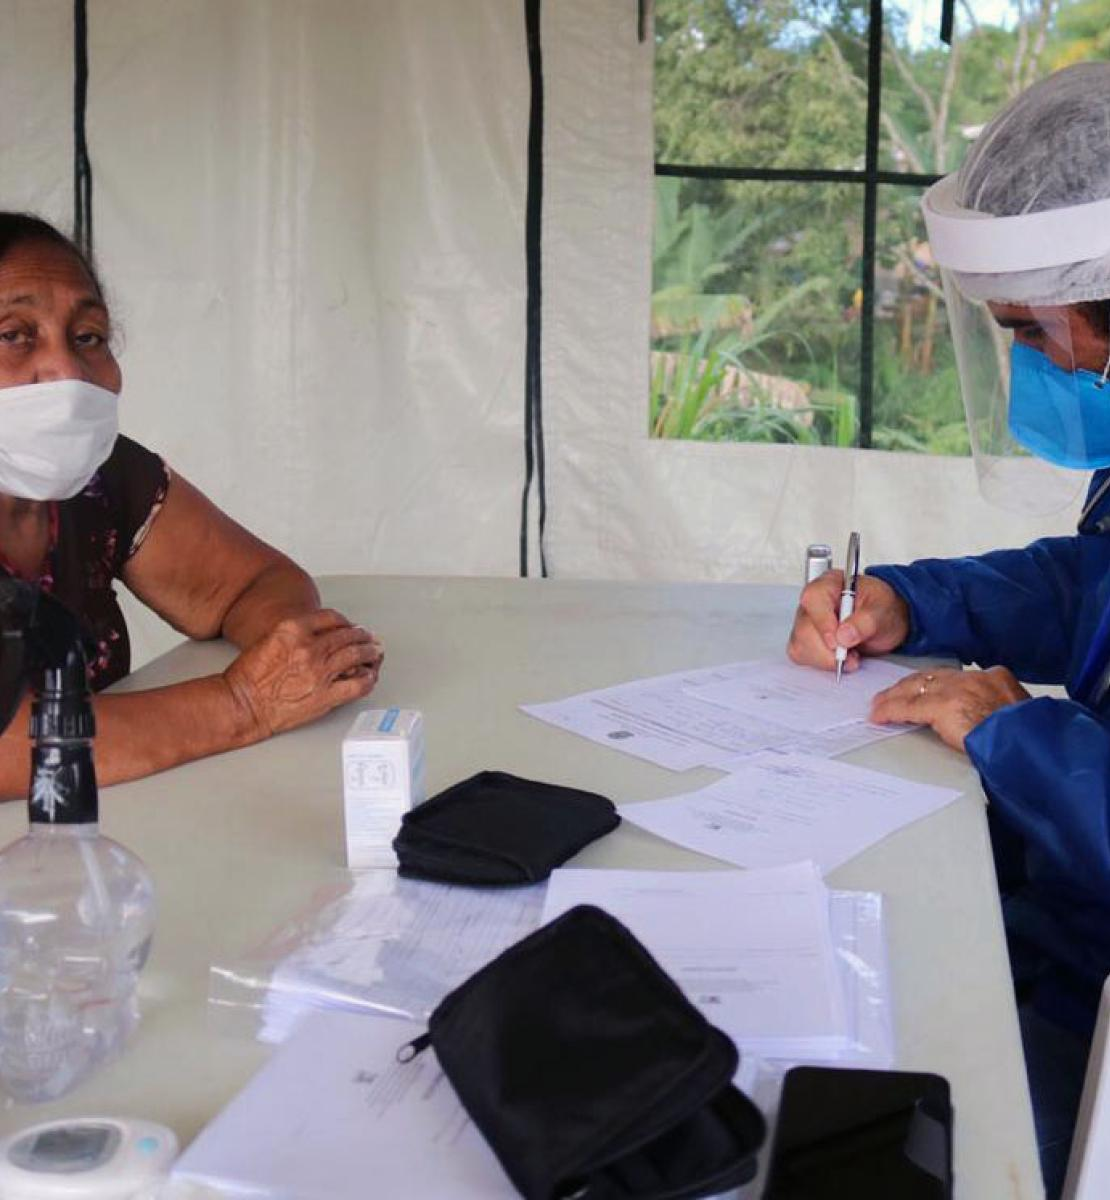 UN personnel conducts an intake for a woman.